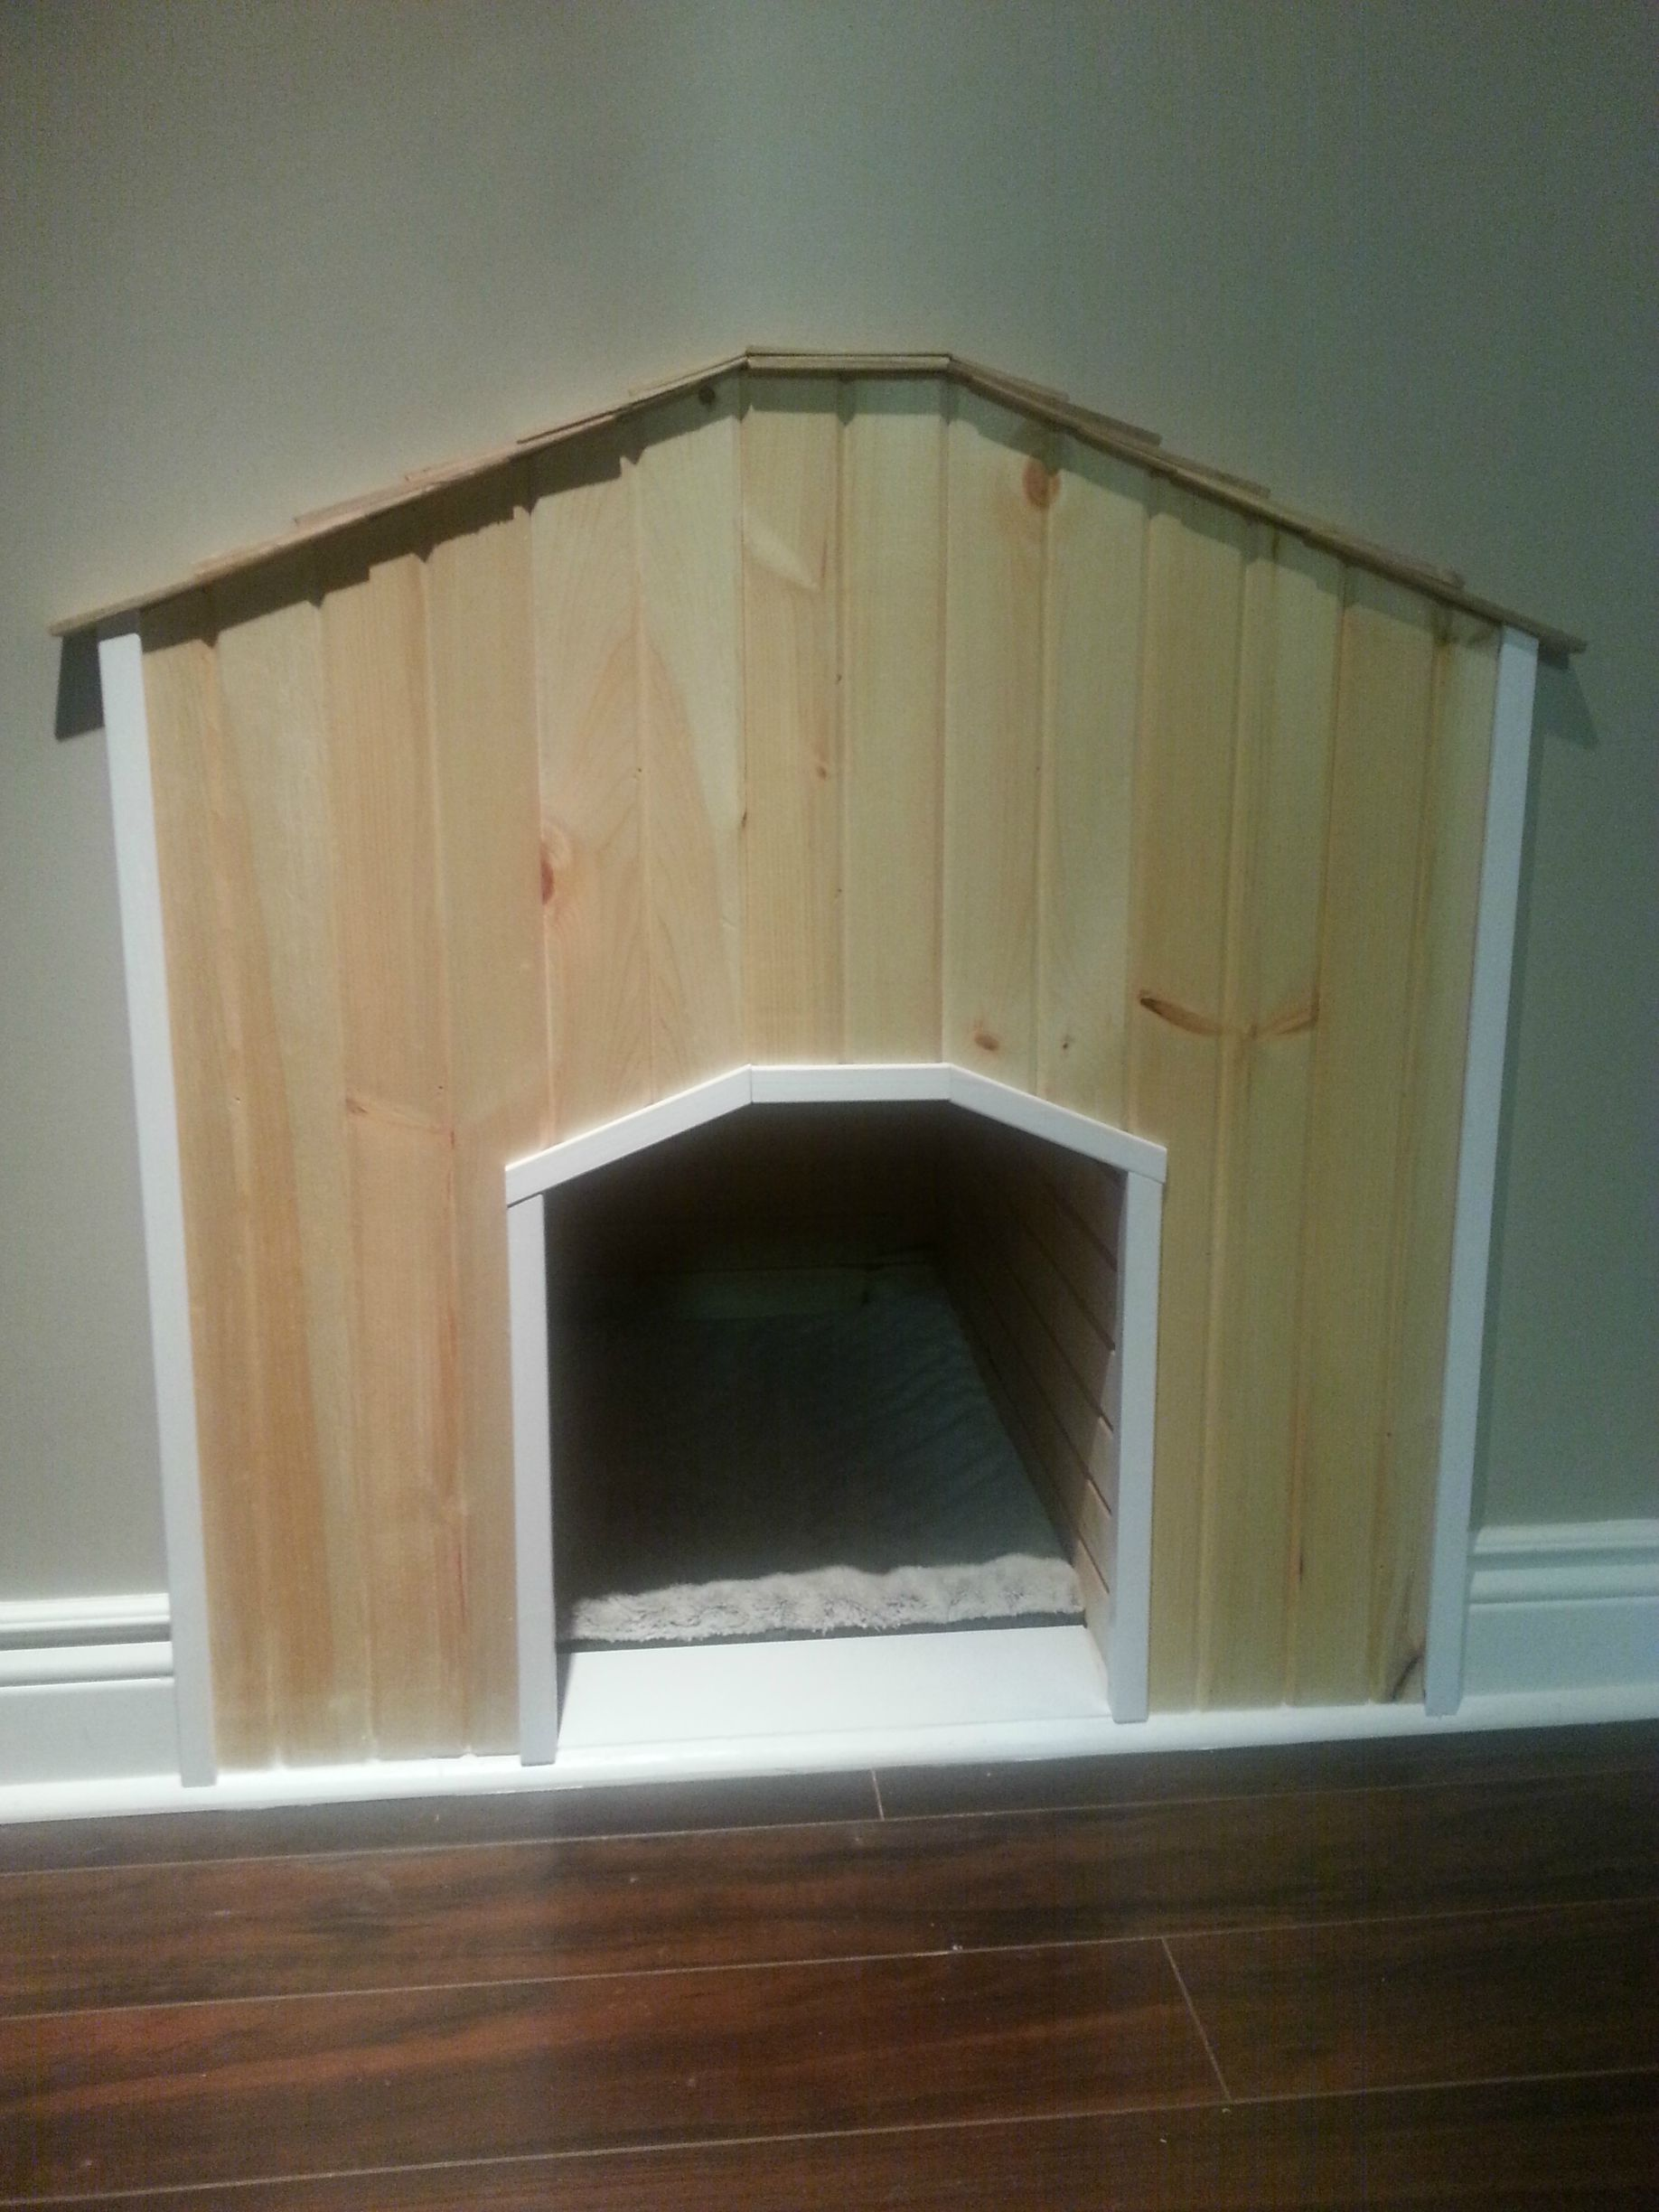 I Built A Dog House Under The Stairs And It Turned Out Better Than Expected